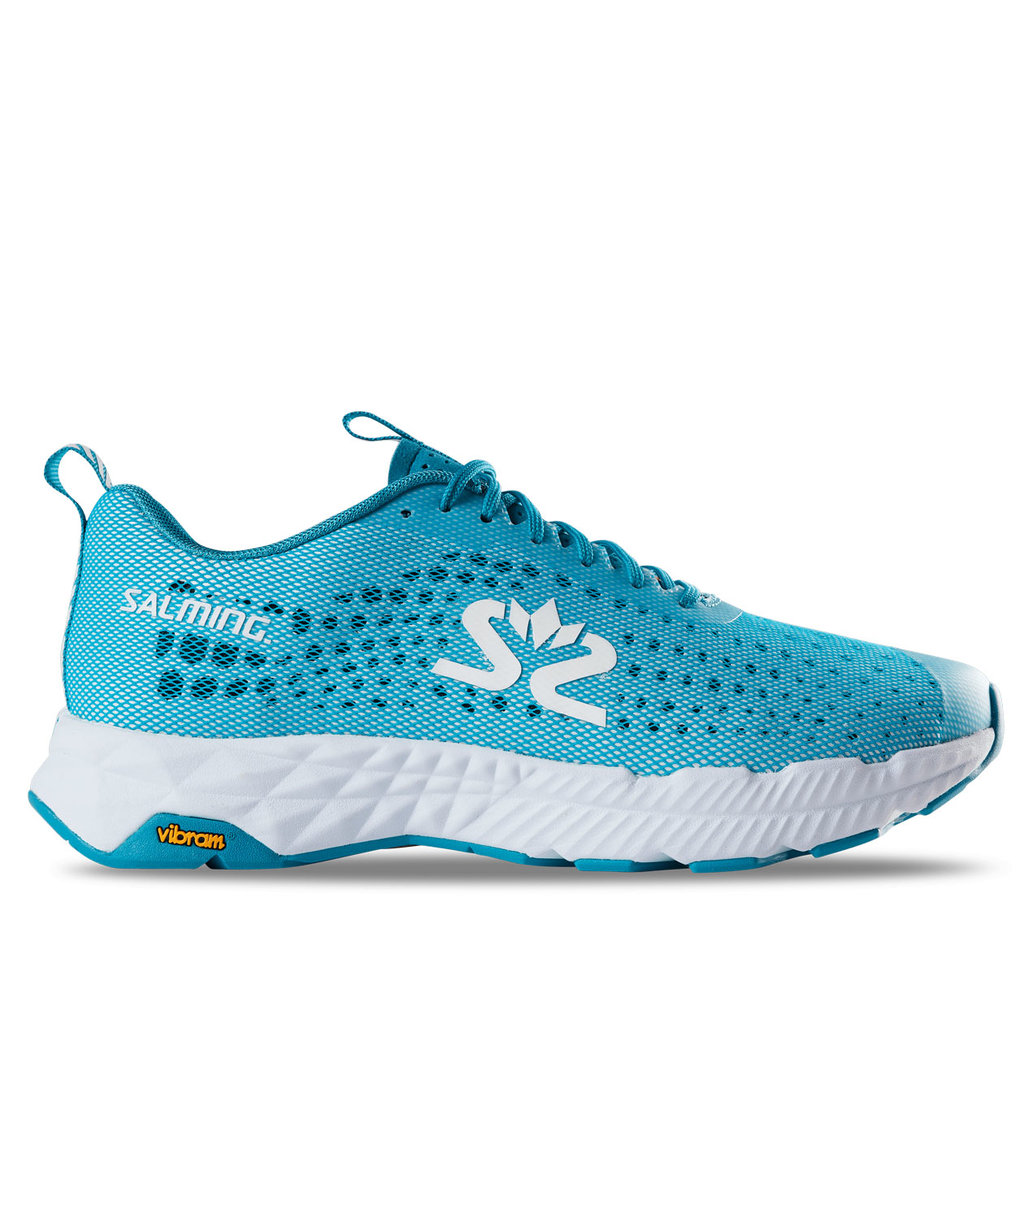 Salming Greyhound women's running shoes, Turquoise